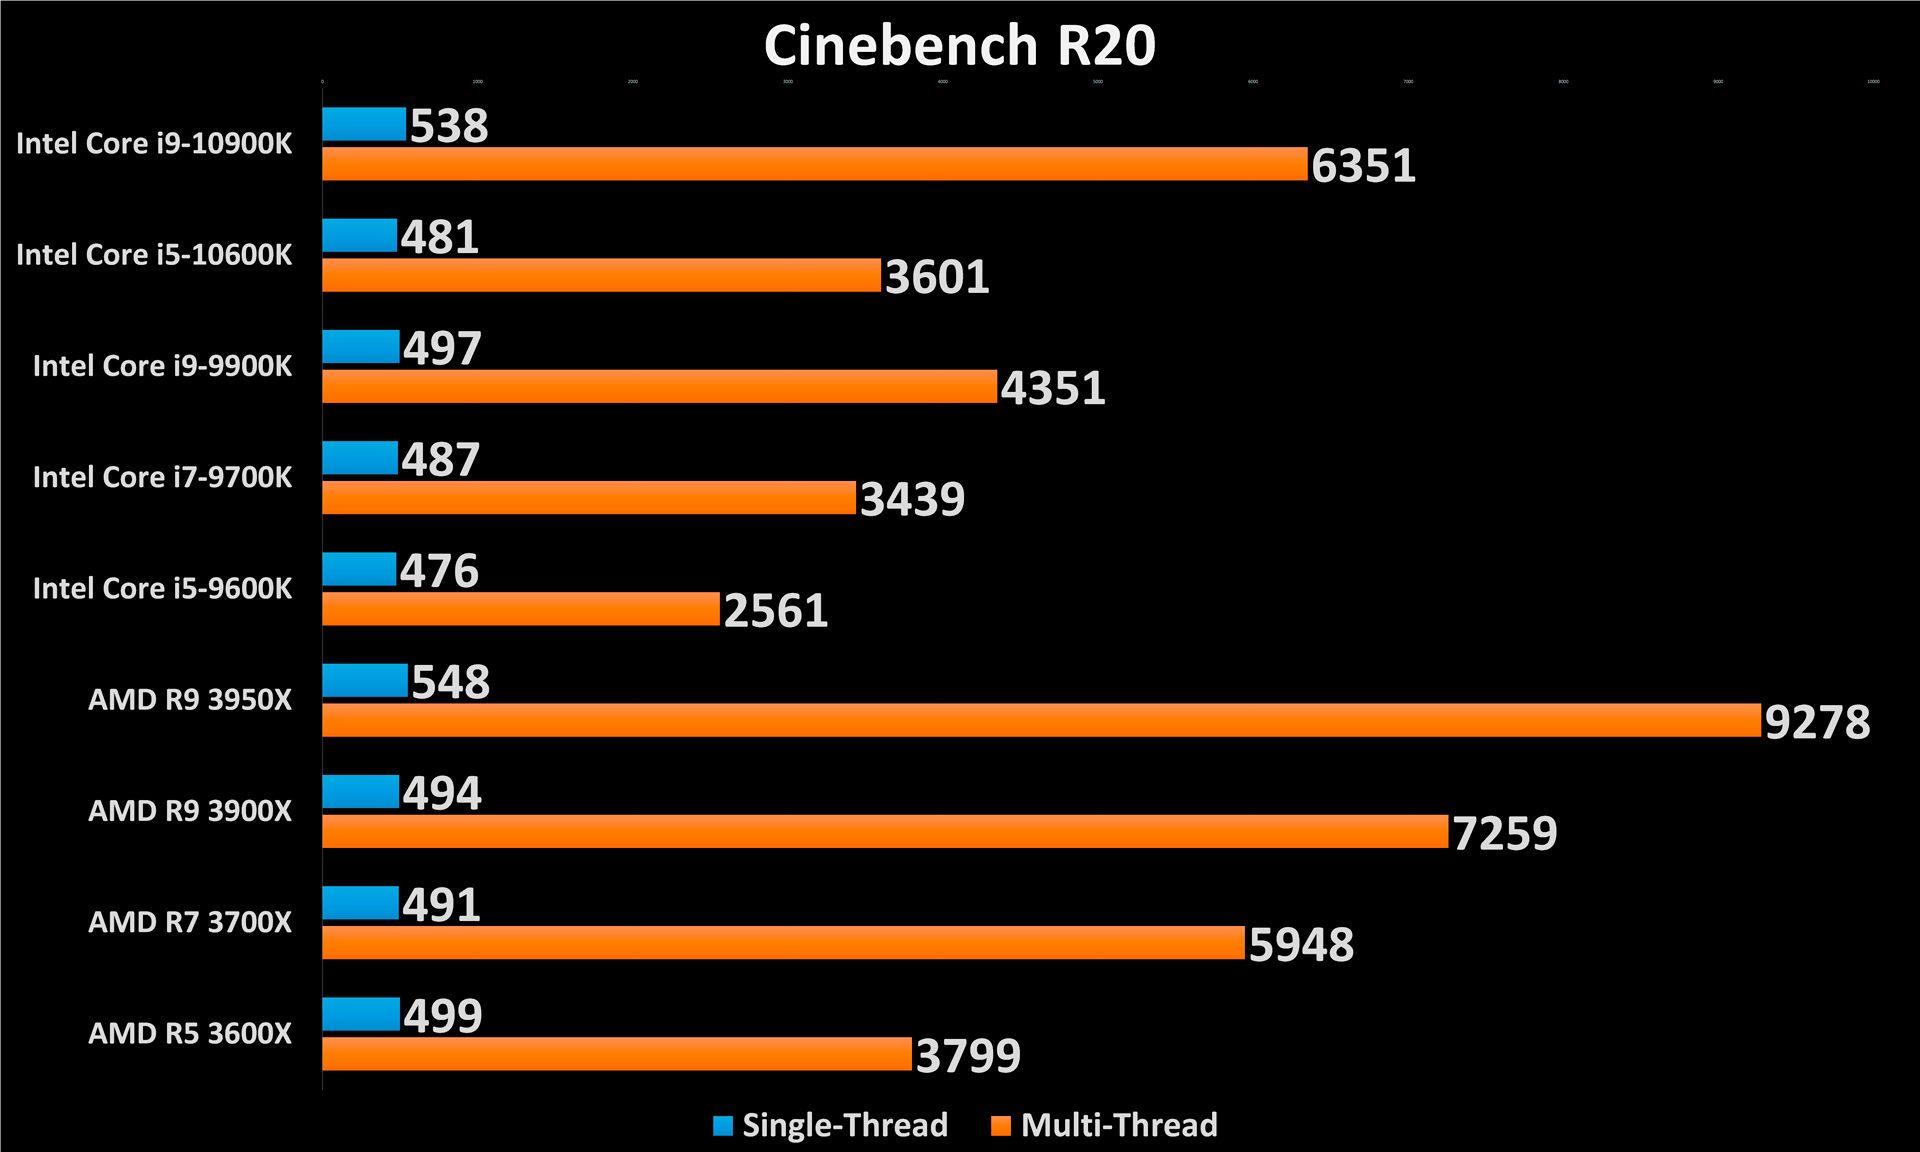 10900K and 10600K Cinebench R20 Performance